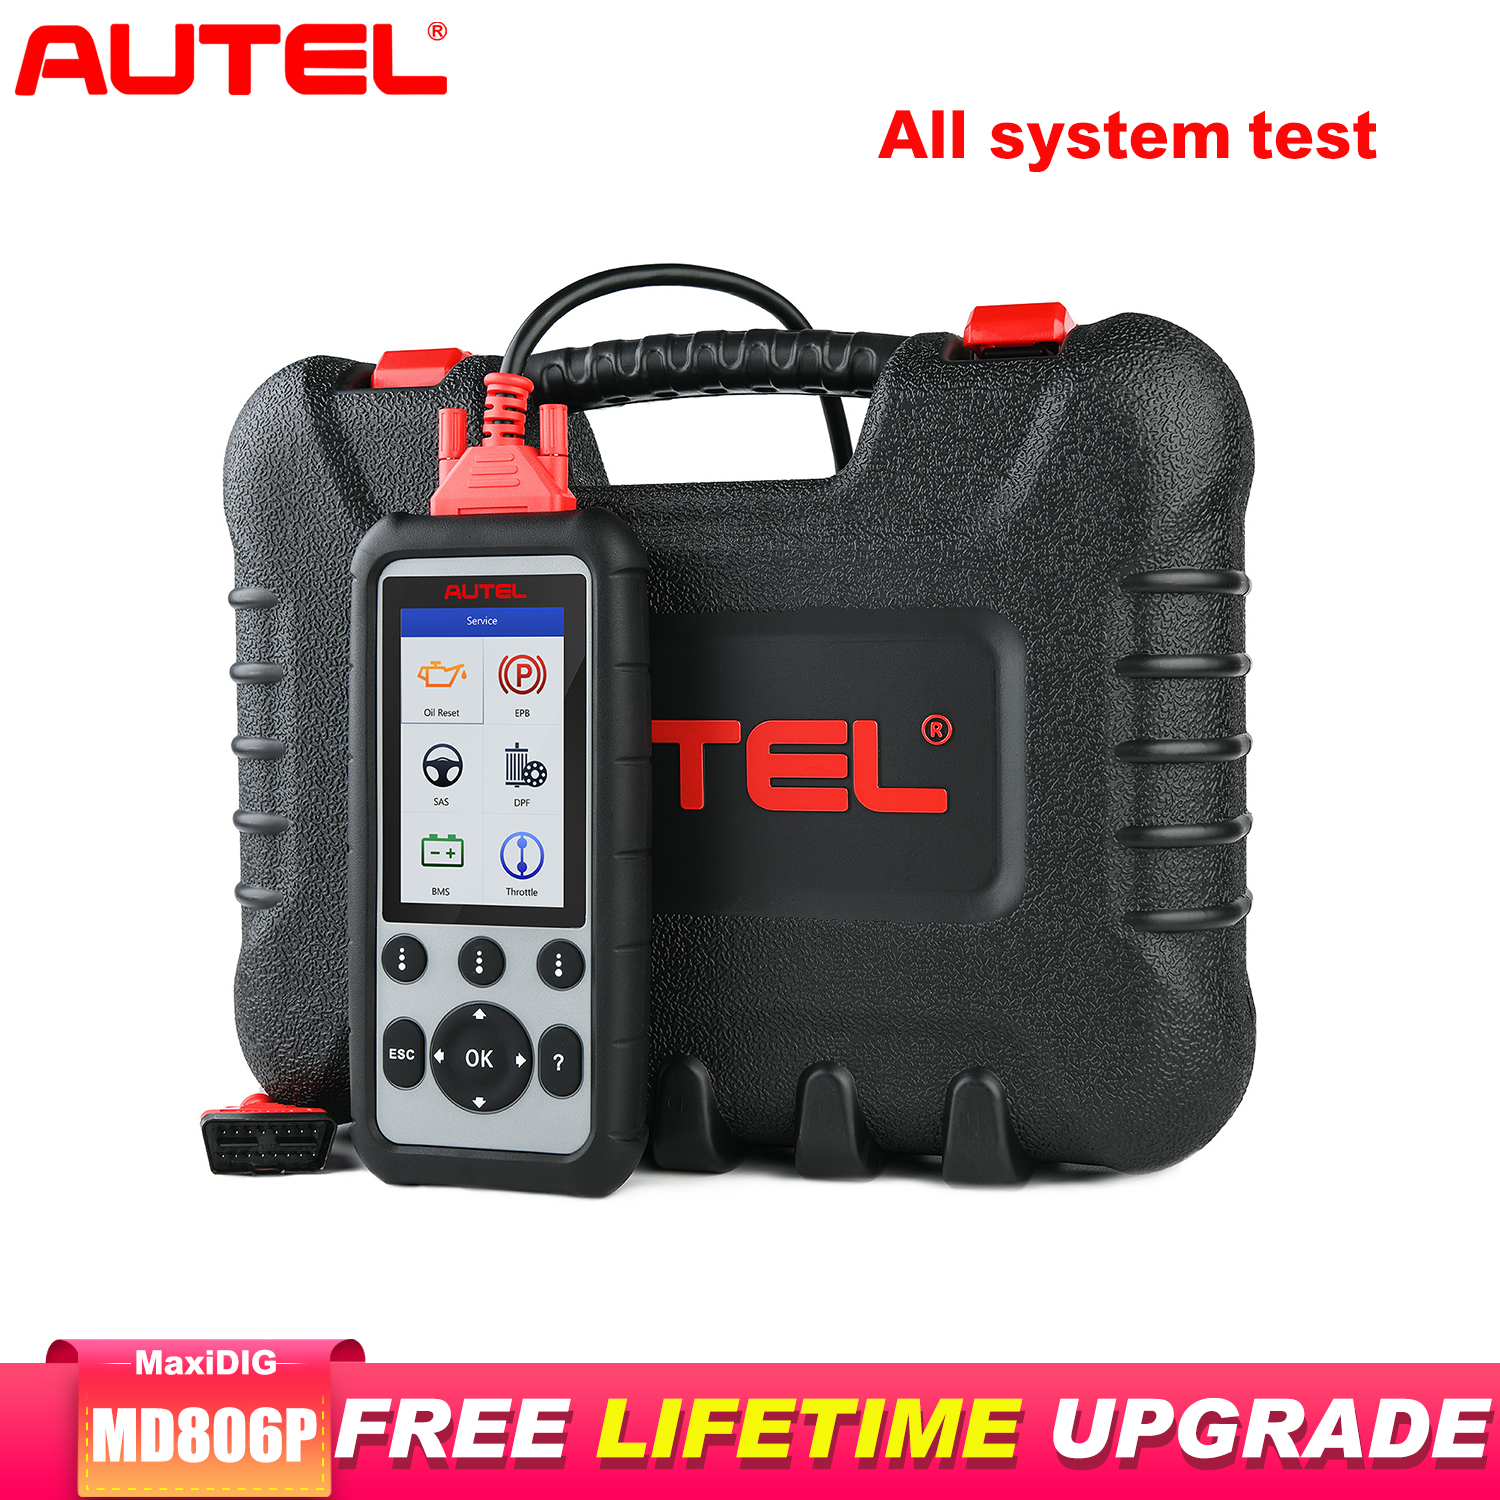 Autel MD806PRO Car Diagnostic Diagnostic AutoTool OBD2 Scanner Full System Code Reader better than LaunchX431 Autel MD805/MD802 image